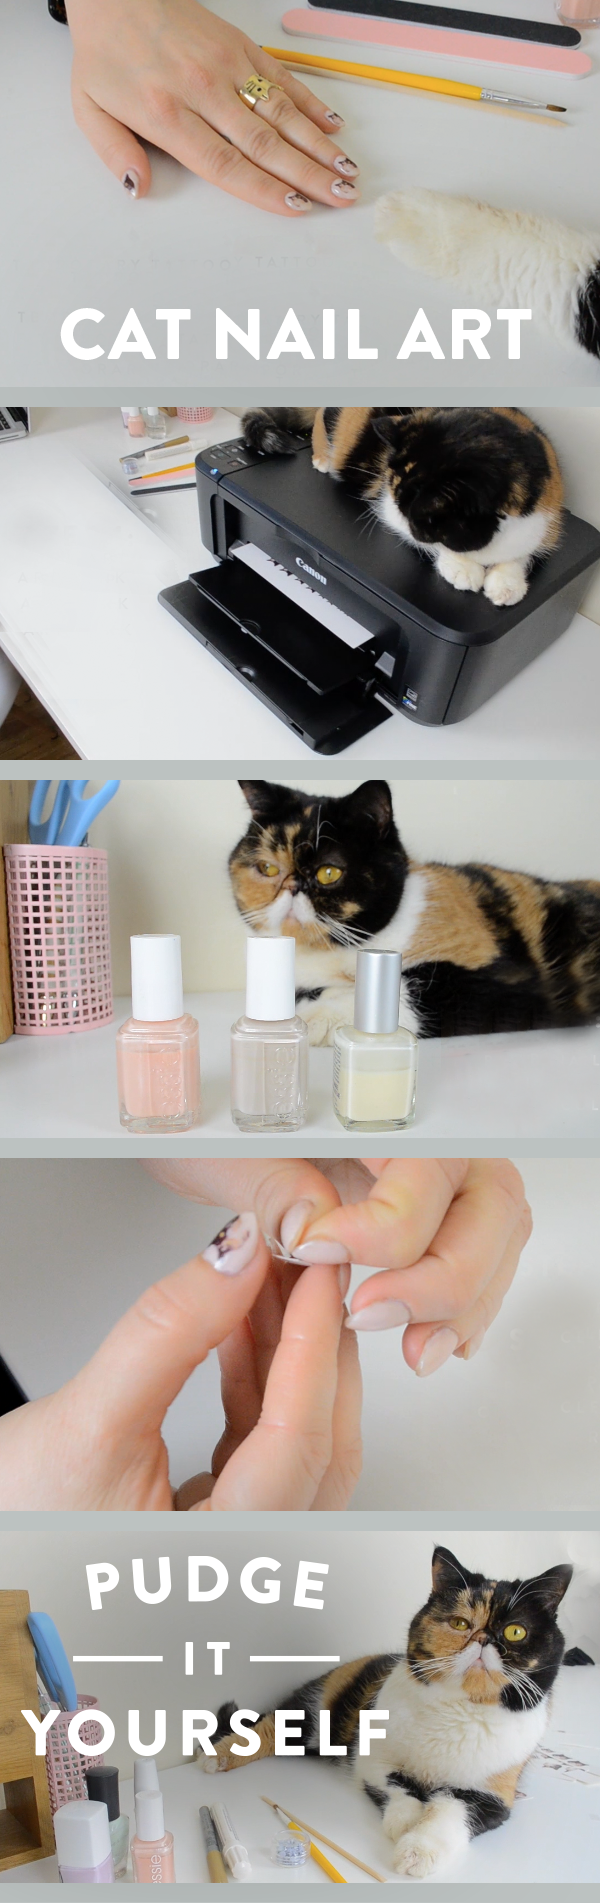 Cat Nail Art tutorial from Pudge-It-Yourself with Pudge the Cat!